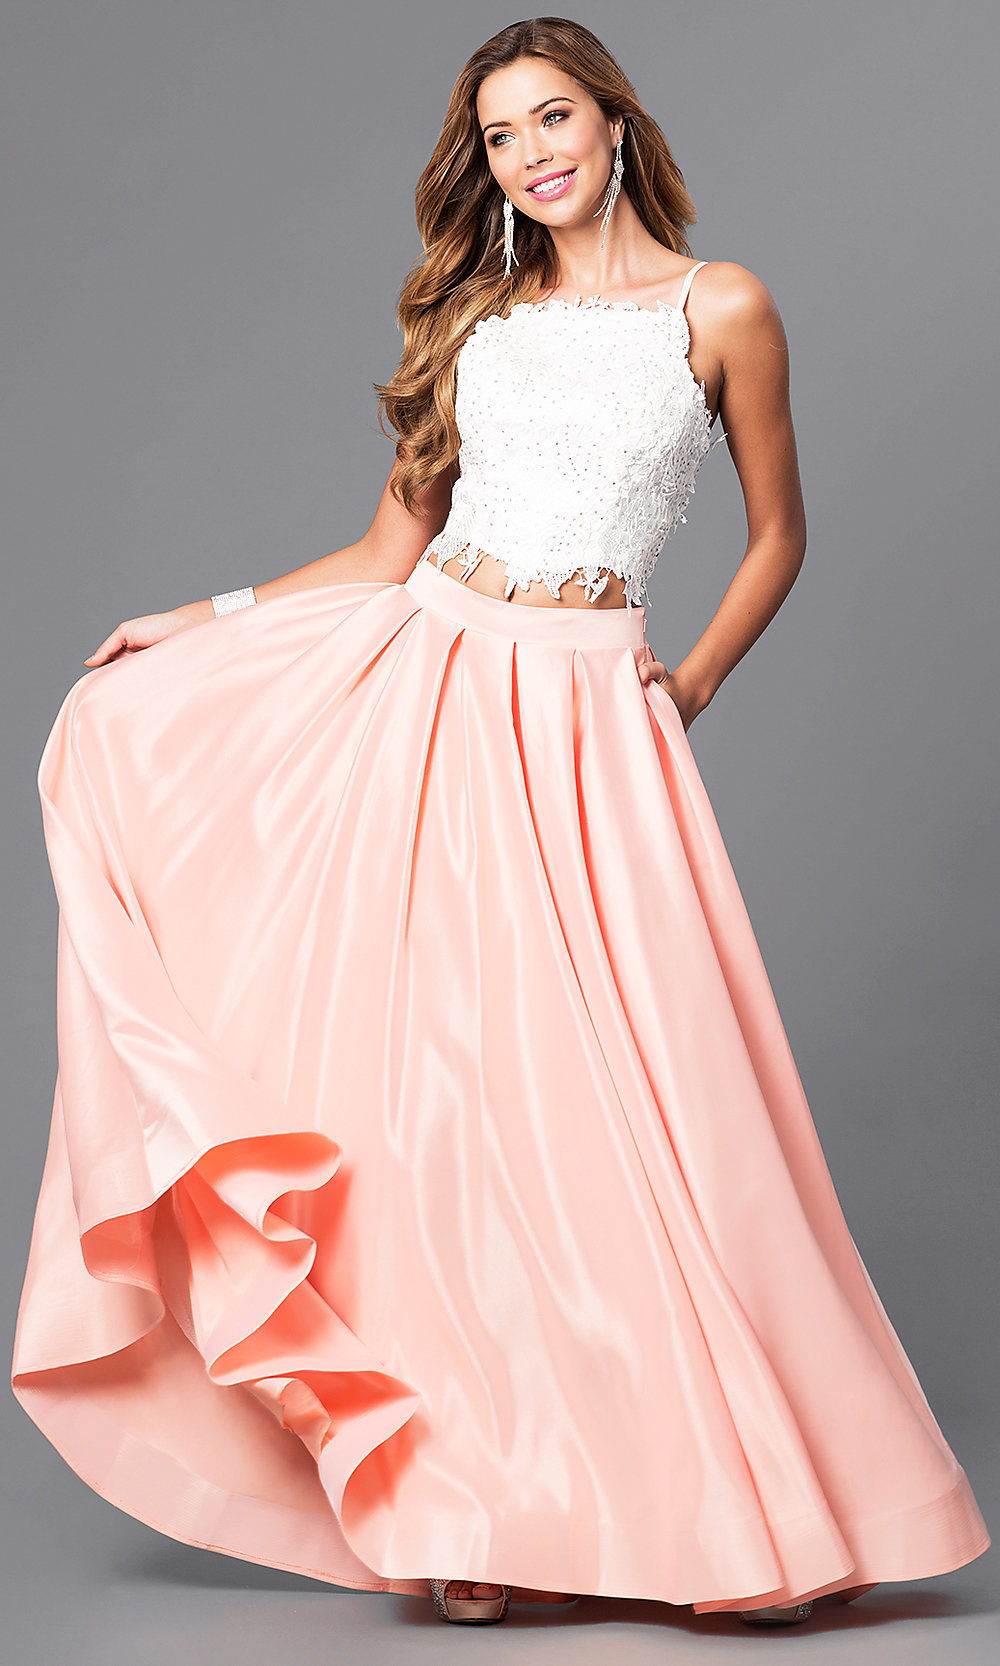 Perfect Peach Ball Gowns Gift - Wedding and flowers ispiration ...